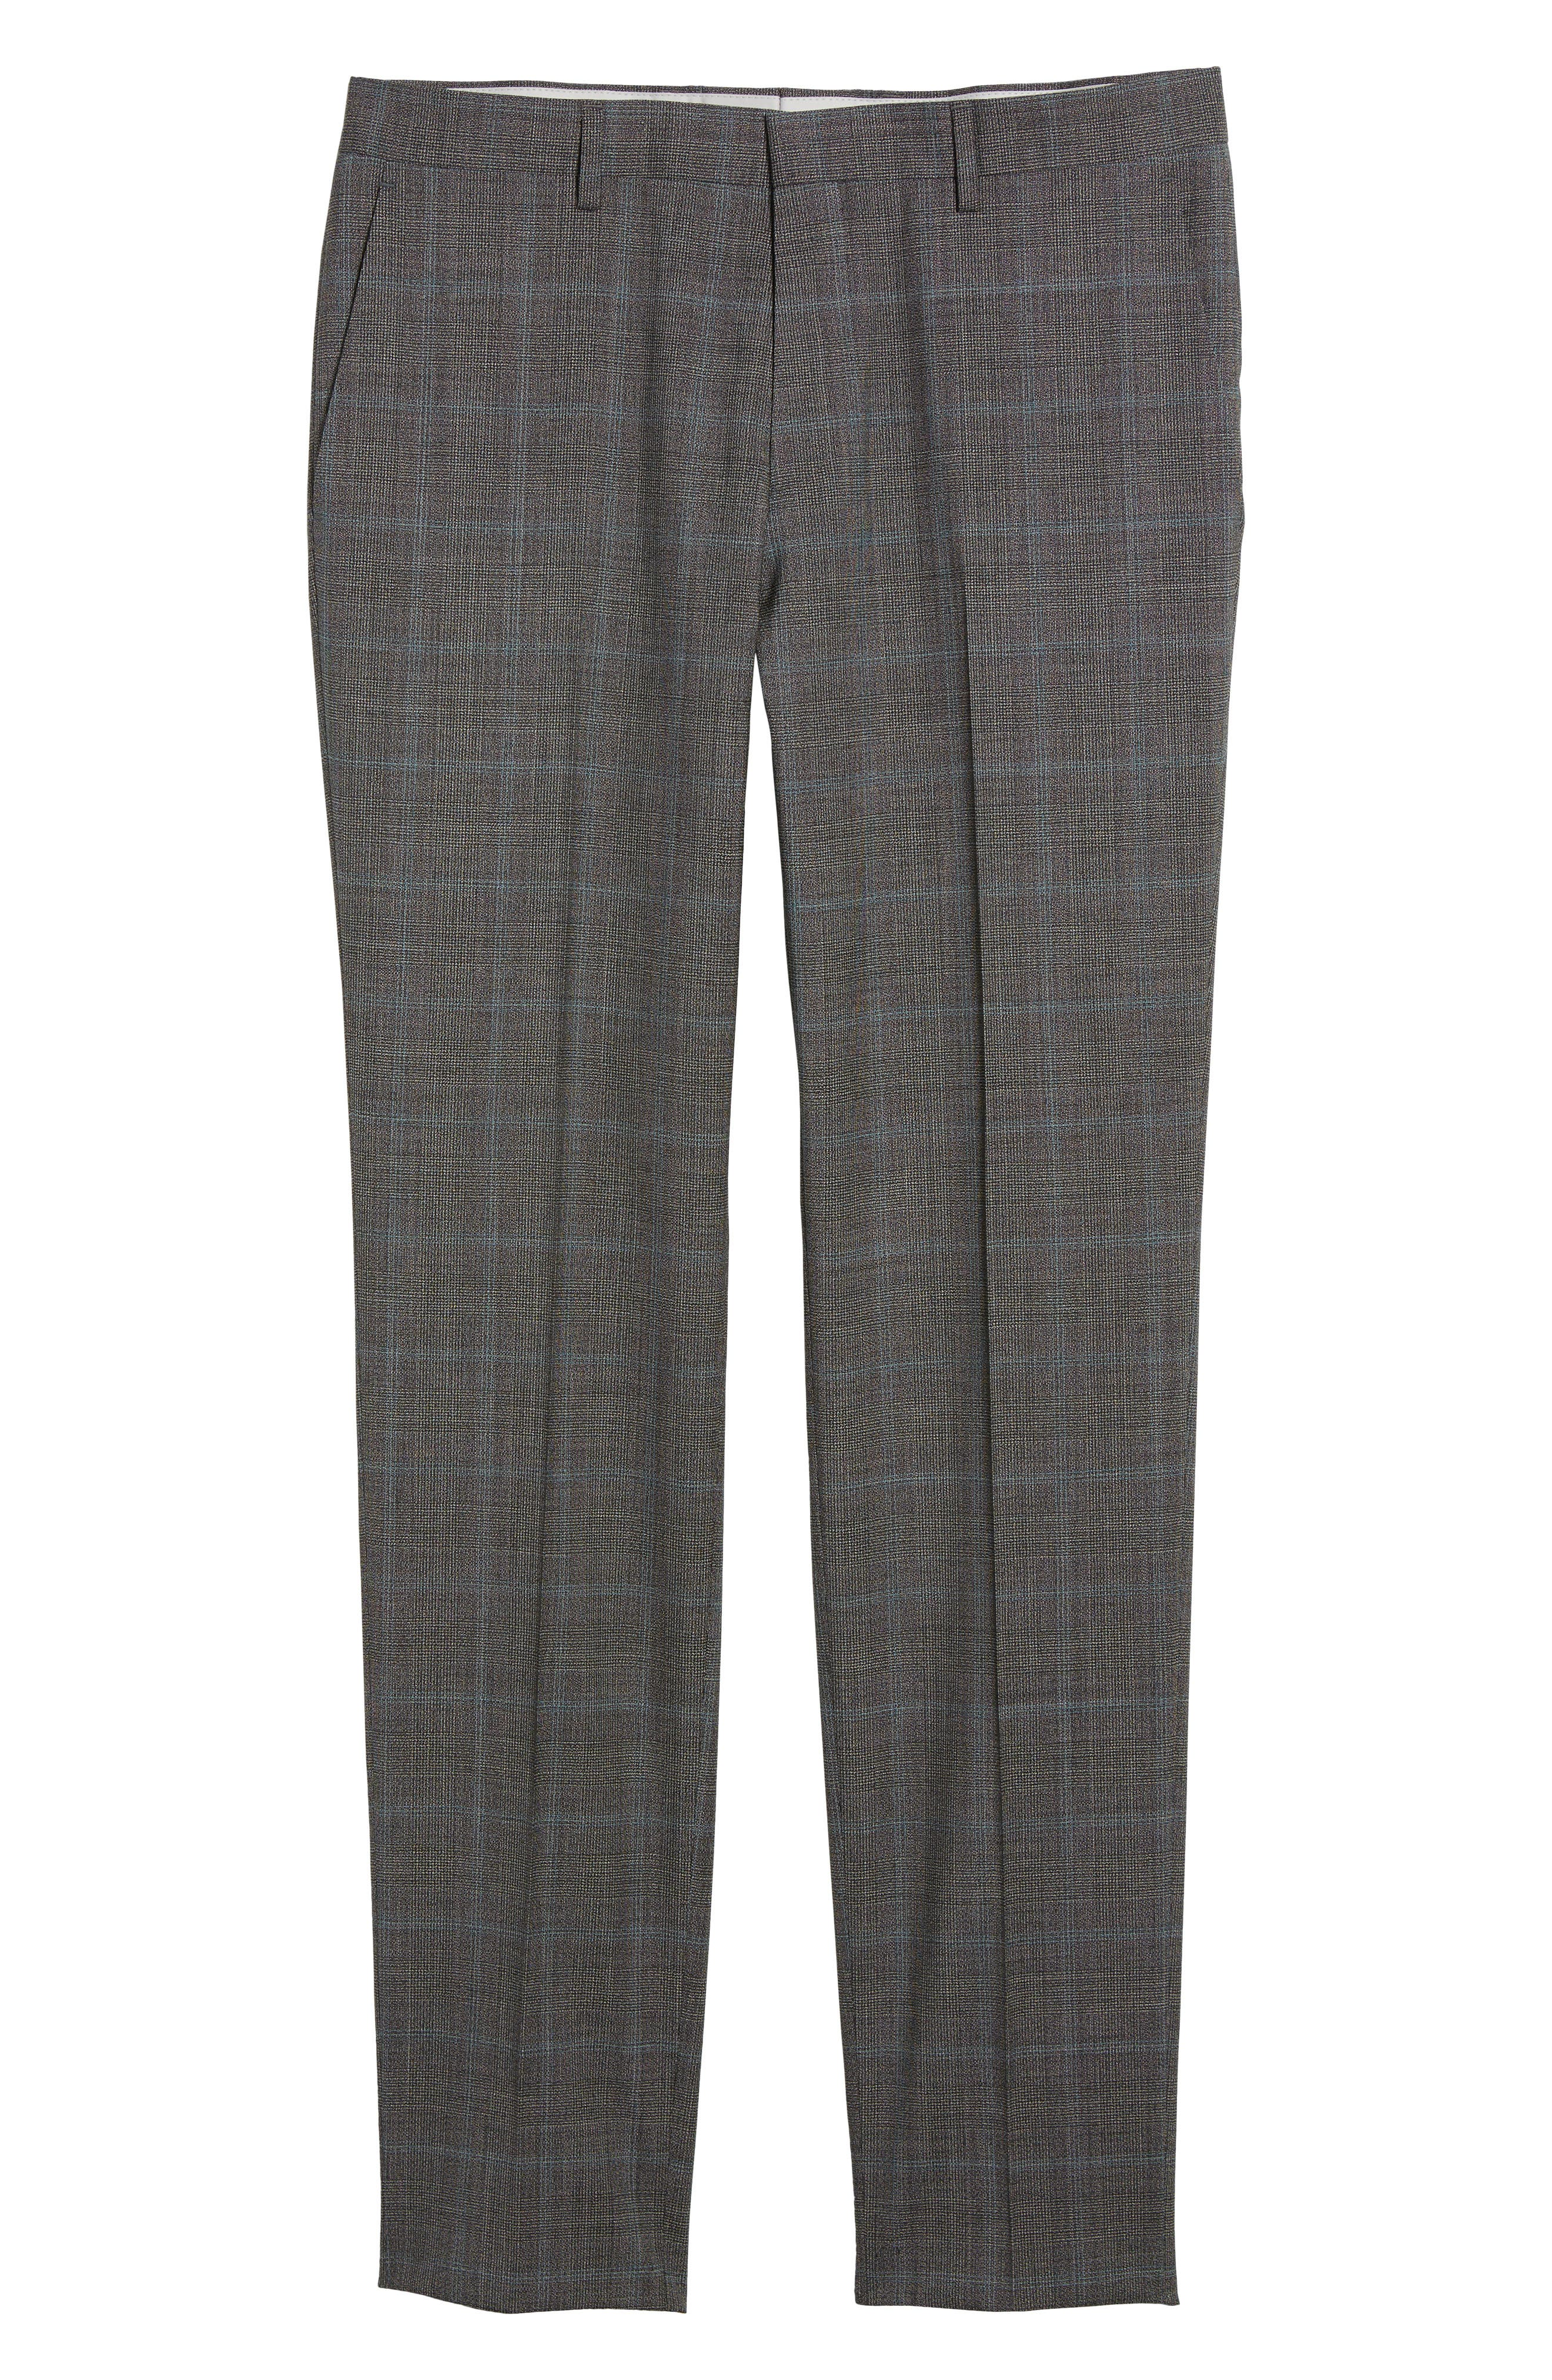 Genesis Flat Front Plaid Wool Trousers,                             Alternate thumbnail 6, color,                             Open Grey